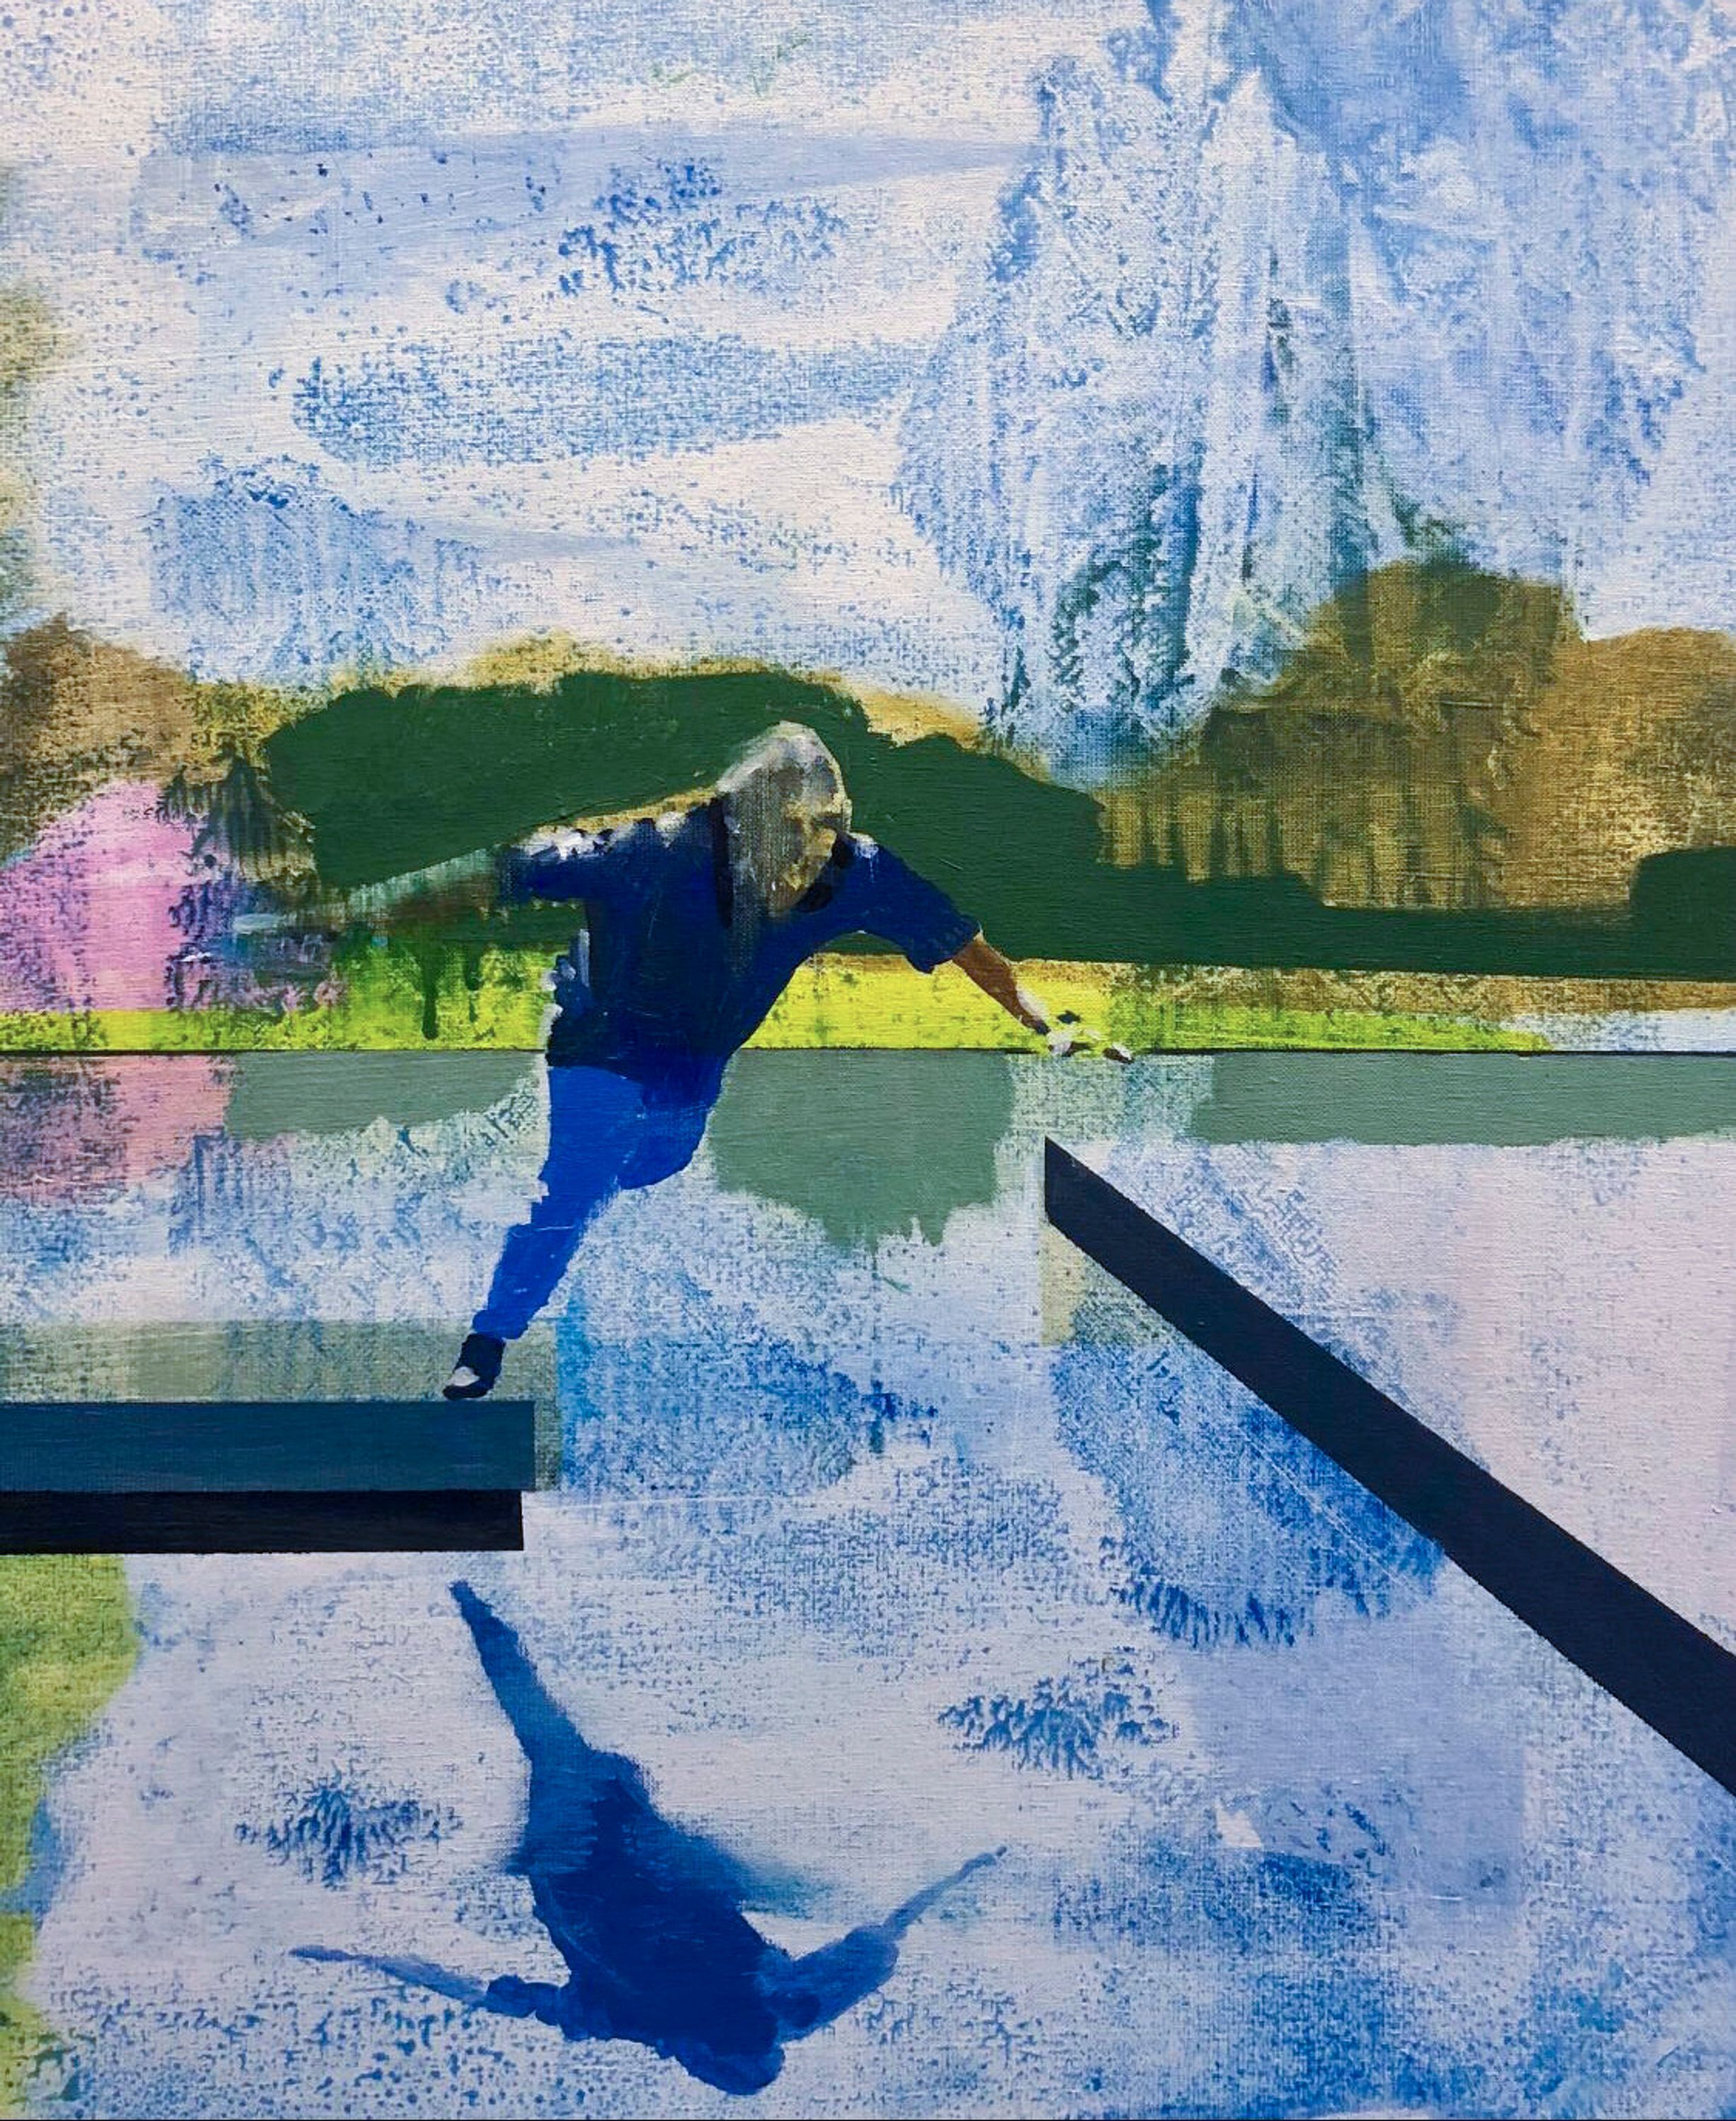 Pond by Kenneth Blom, Luisa Catucci Gallery